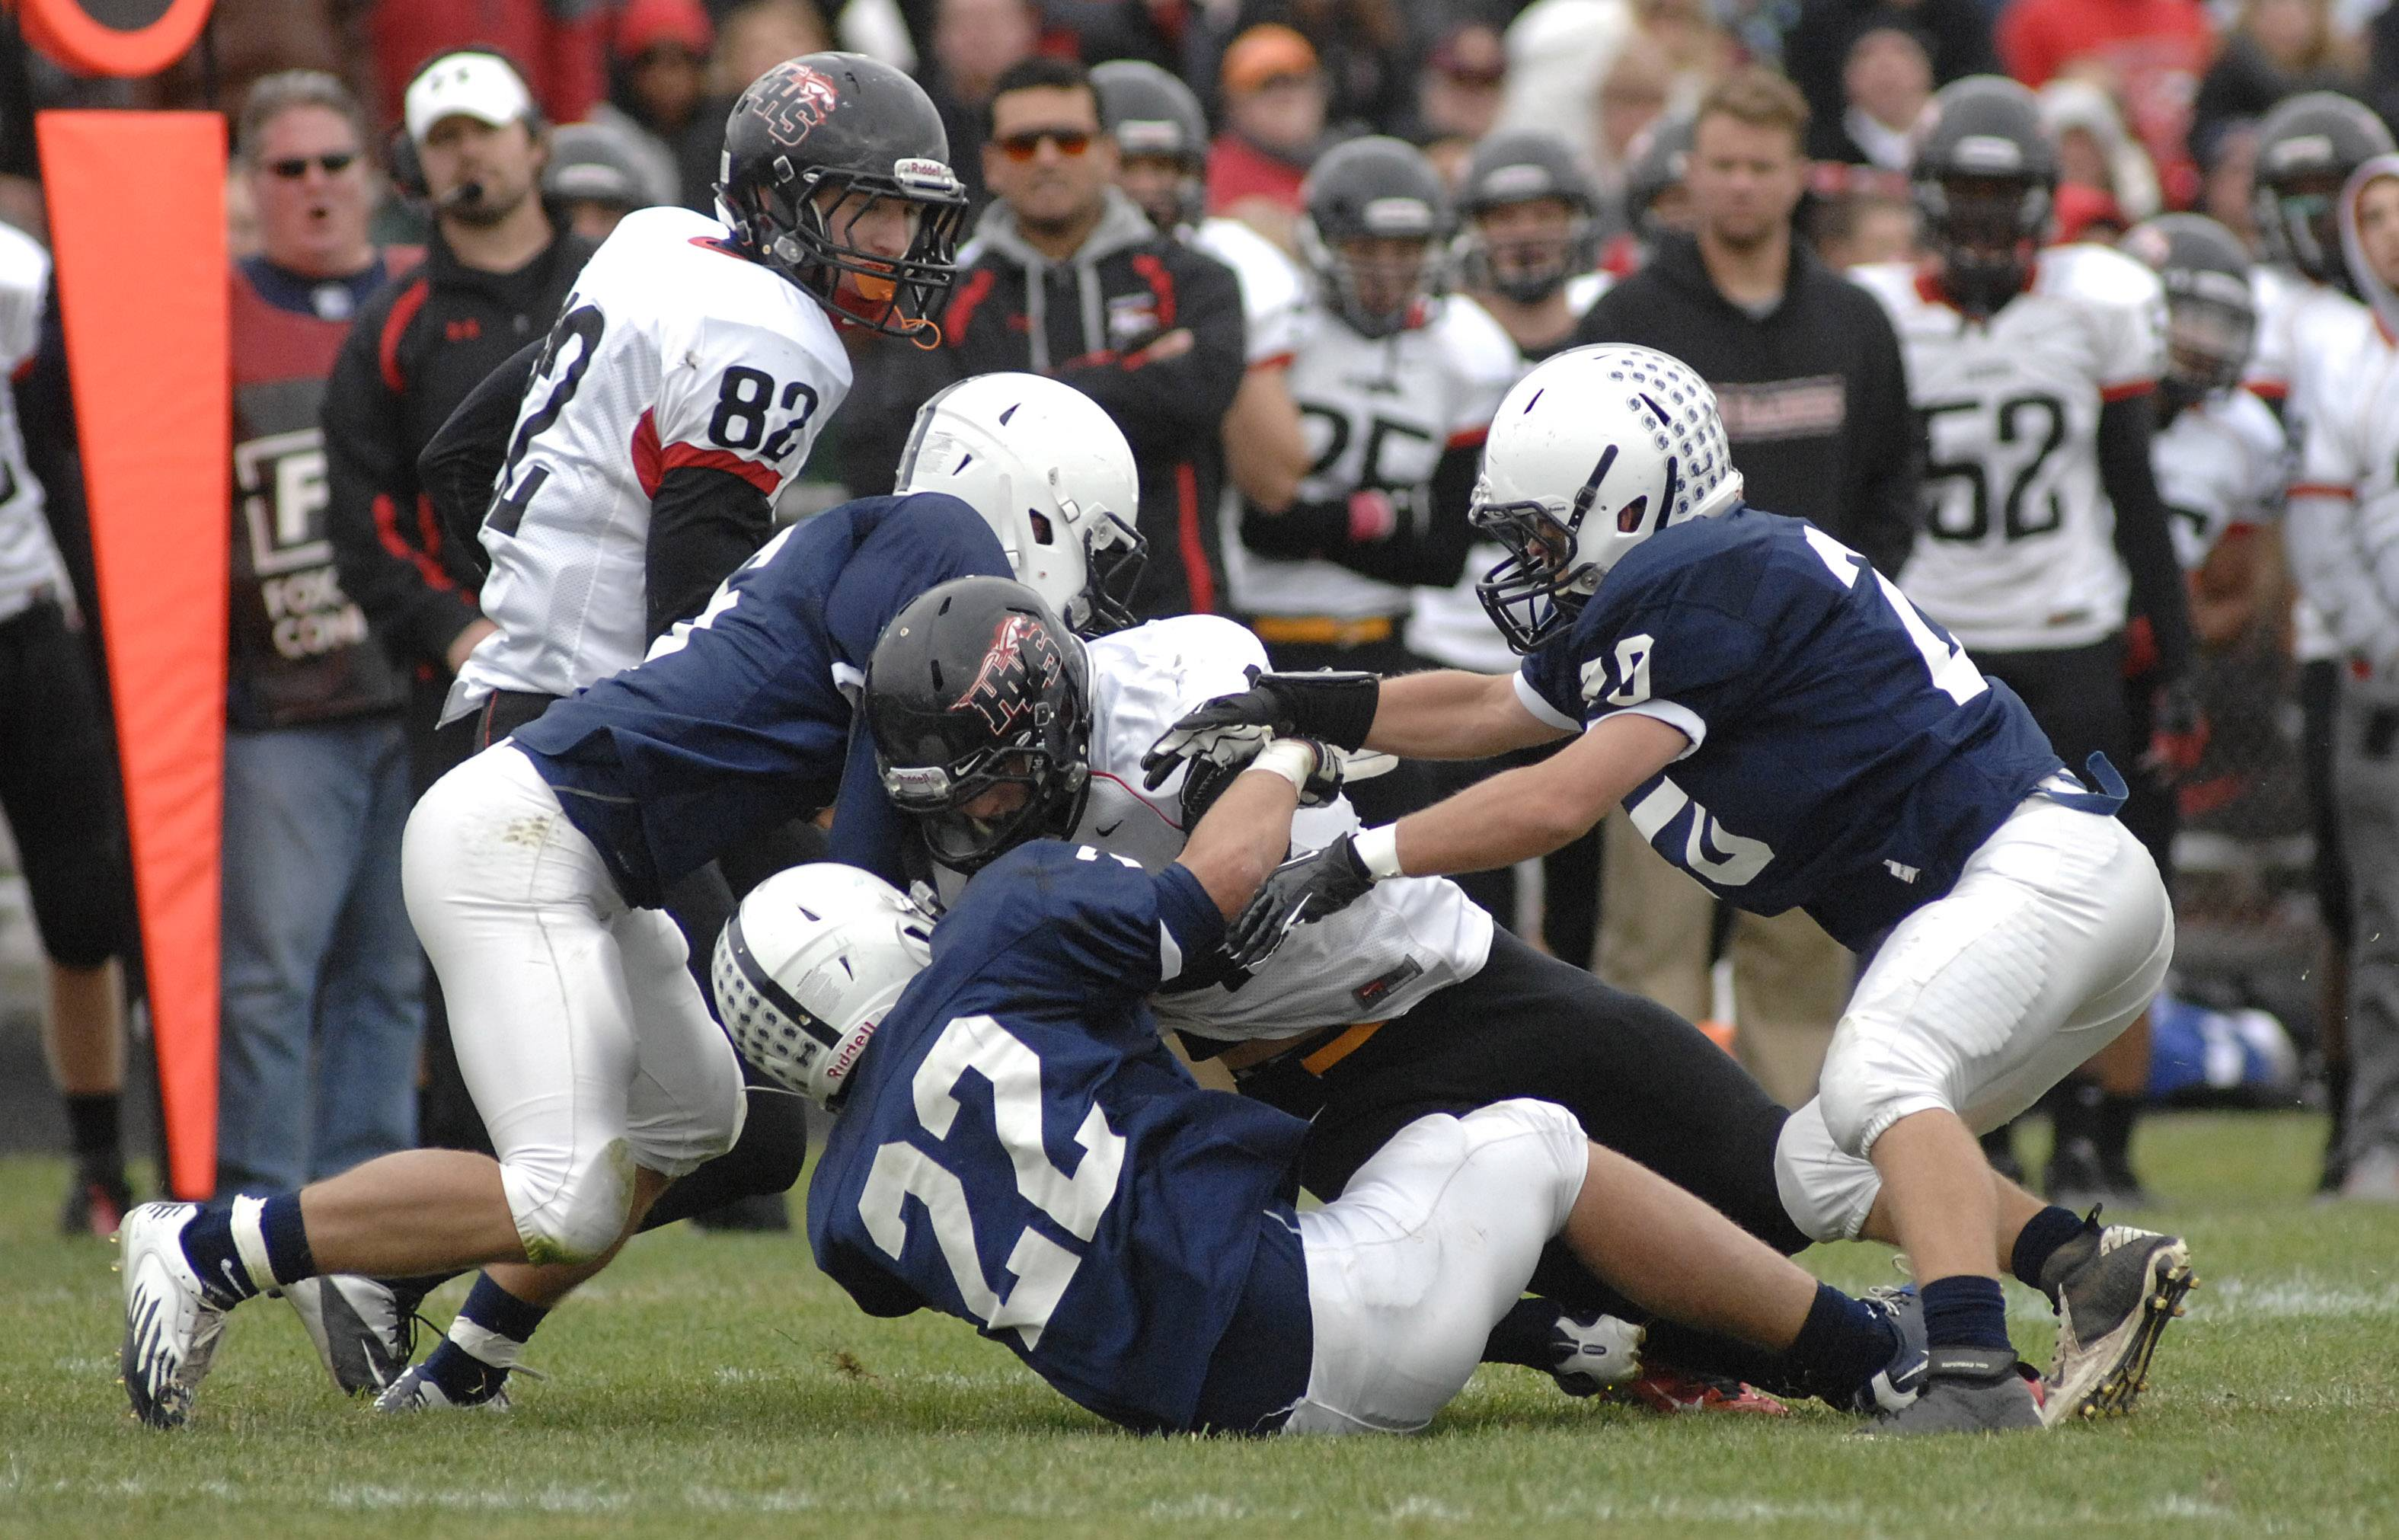 The Cary-Grove Trojans hosted the Huntley Red Raiders in a marquis prep football match-up Saturday in Cary. Cary-Grove beat Huntley 41-14.